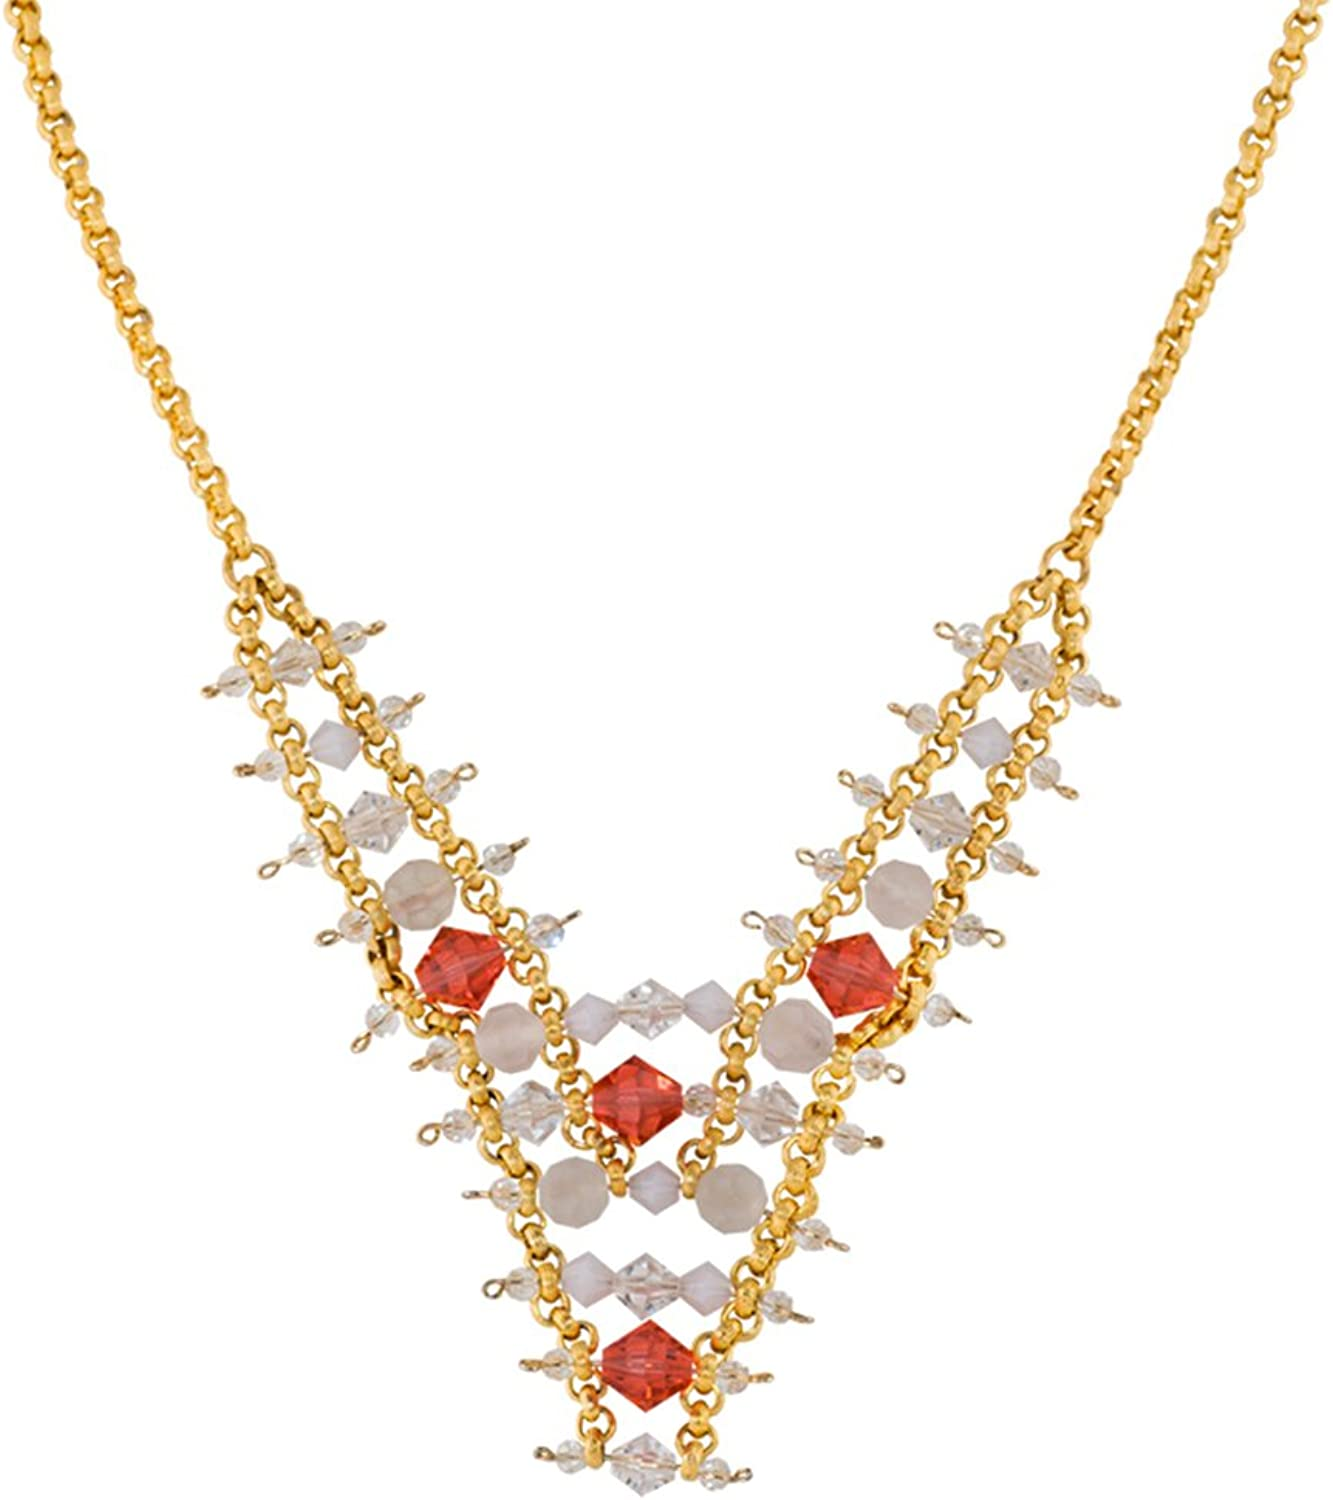 Alzerina Handmade Cluster Necklace with Swarovski Crystals and 24K gold Plated Chains